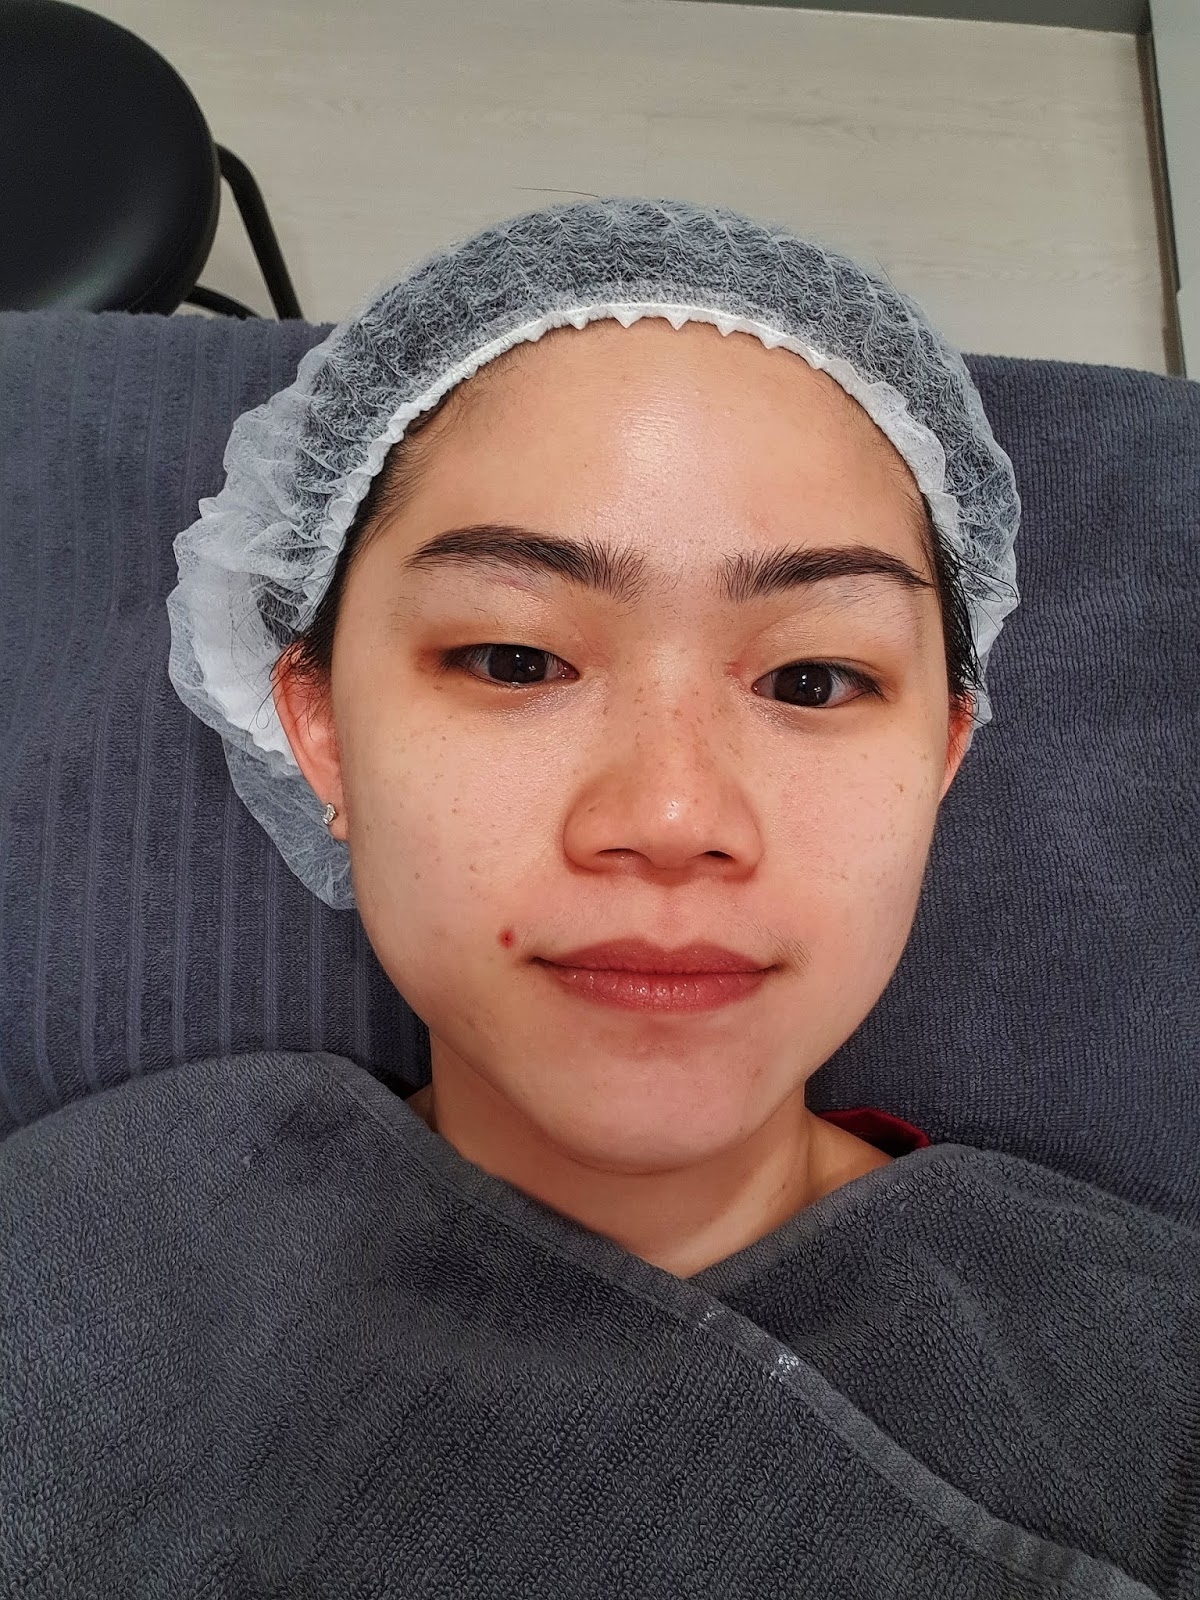 Looking At My Photo You Probably Know Why I Need To Do Pico Laser The Pigmentation Are Concentrated On Nose And Cheeks Areas Don T Agree That They